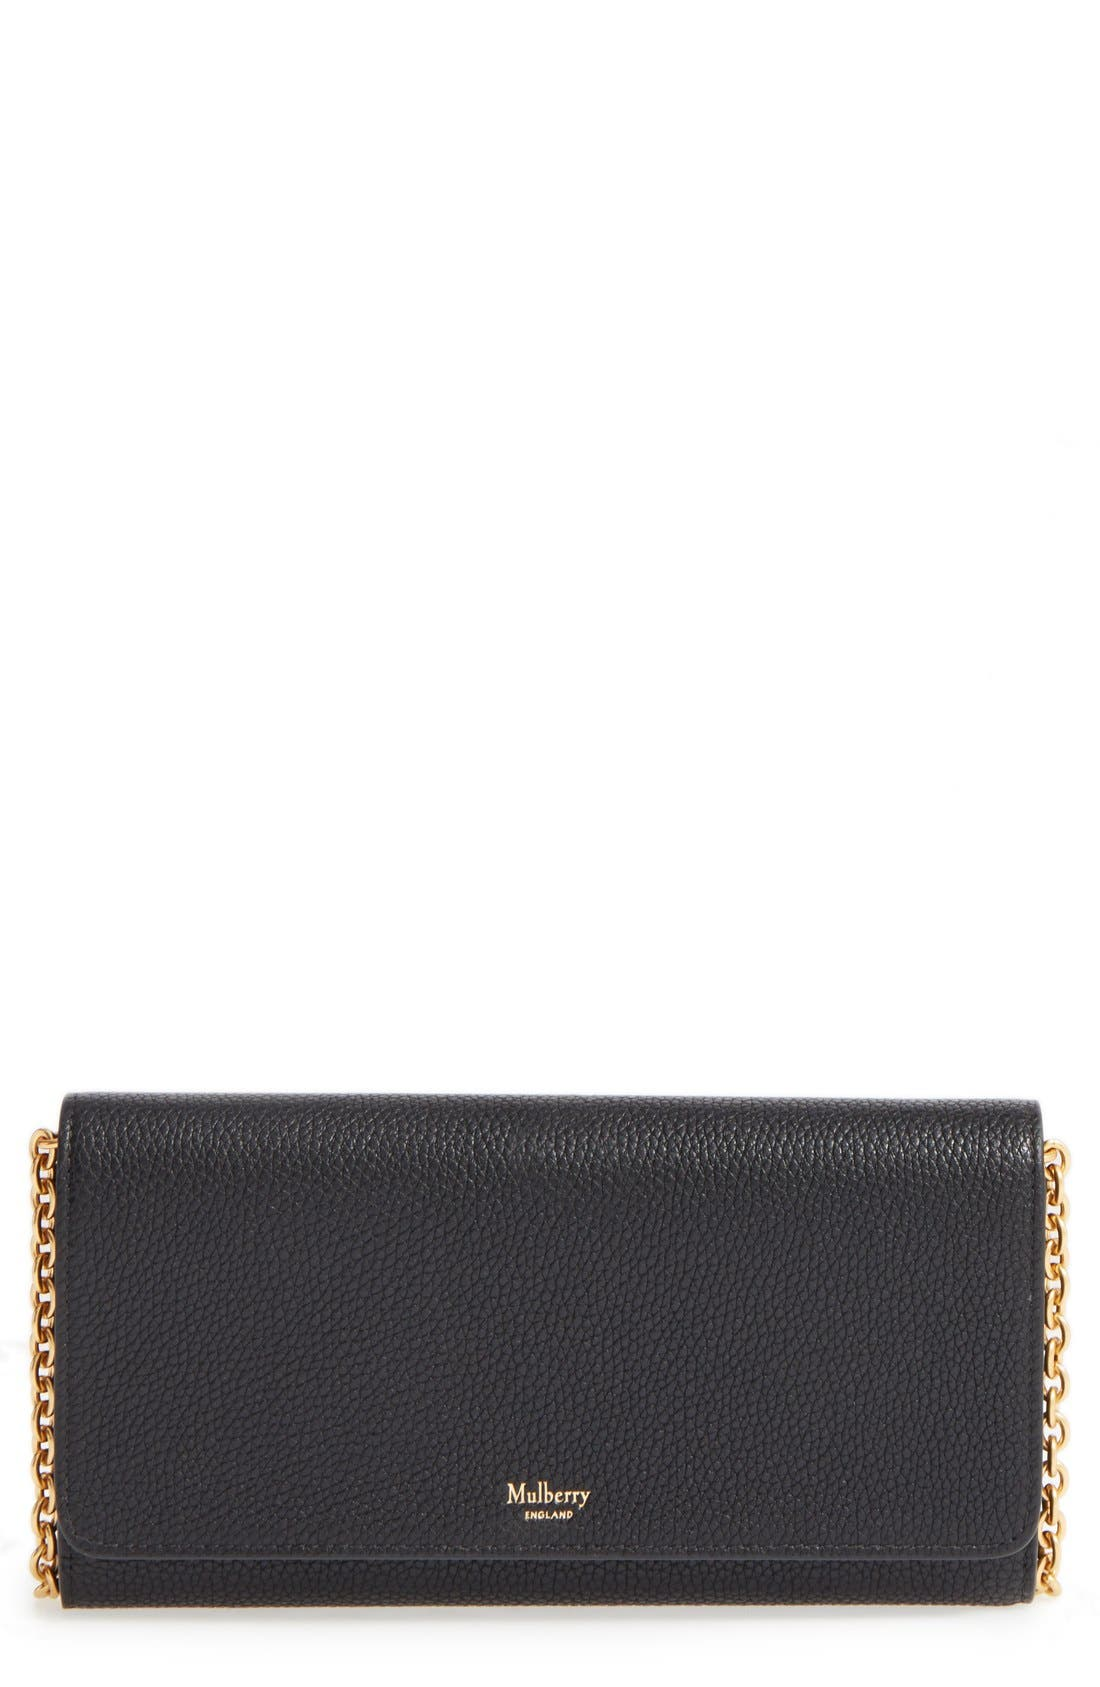 'Continental - Classic' Convertible Leather Clutch,                         Main,                         color,